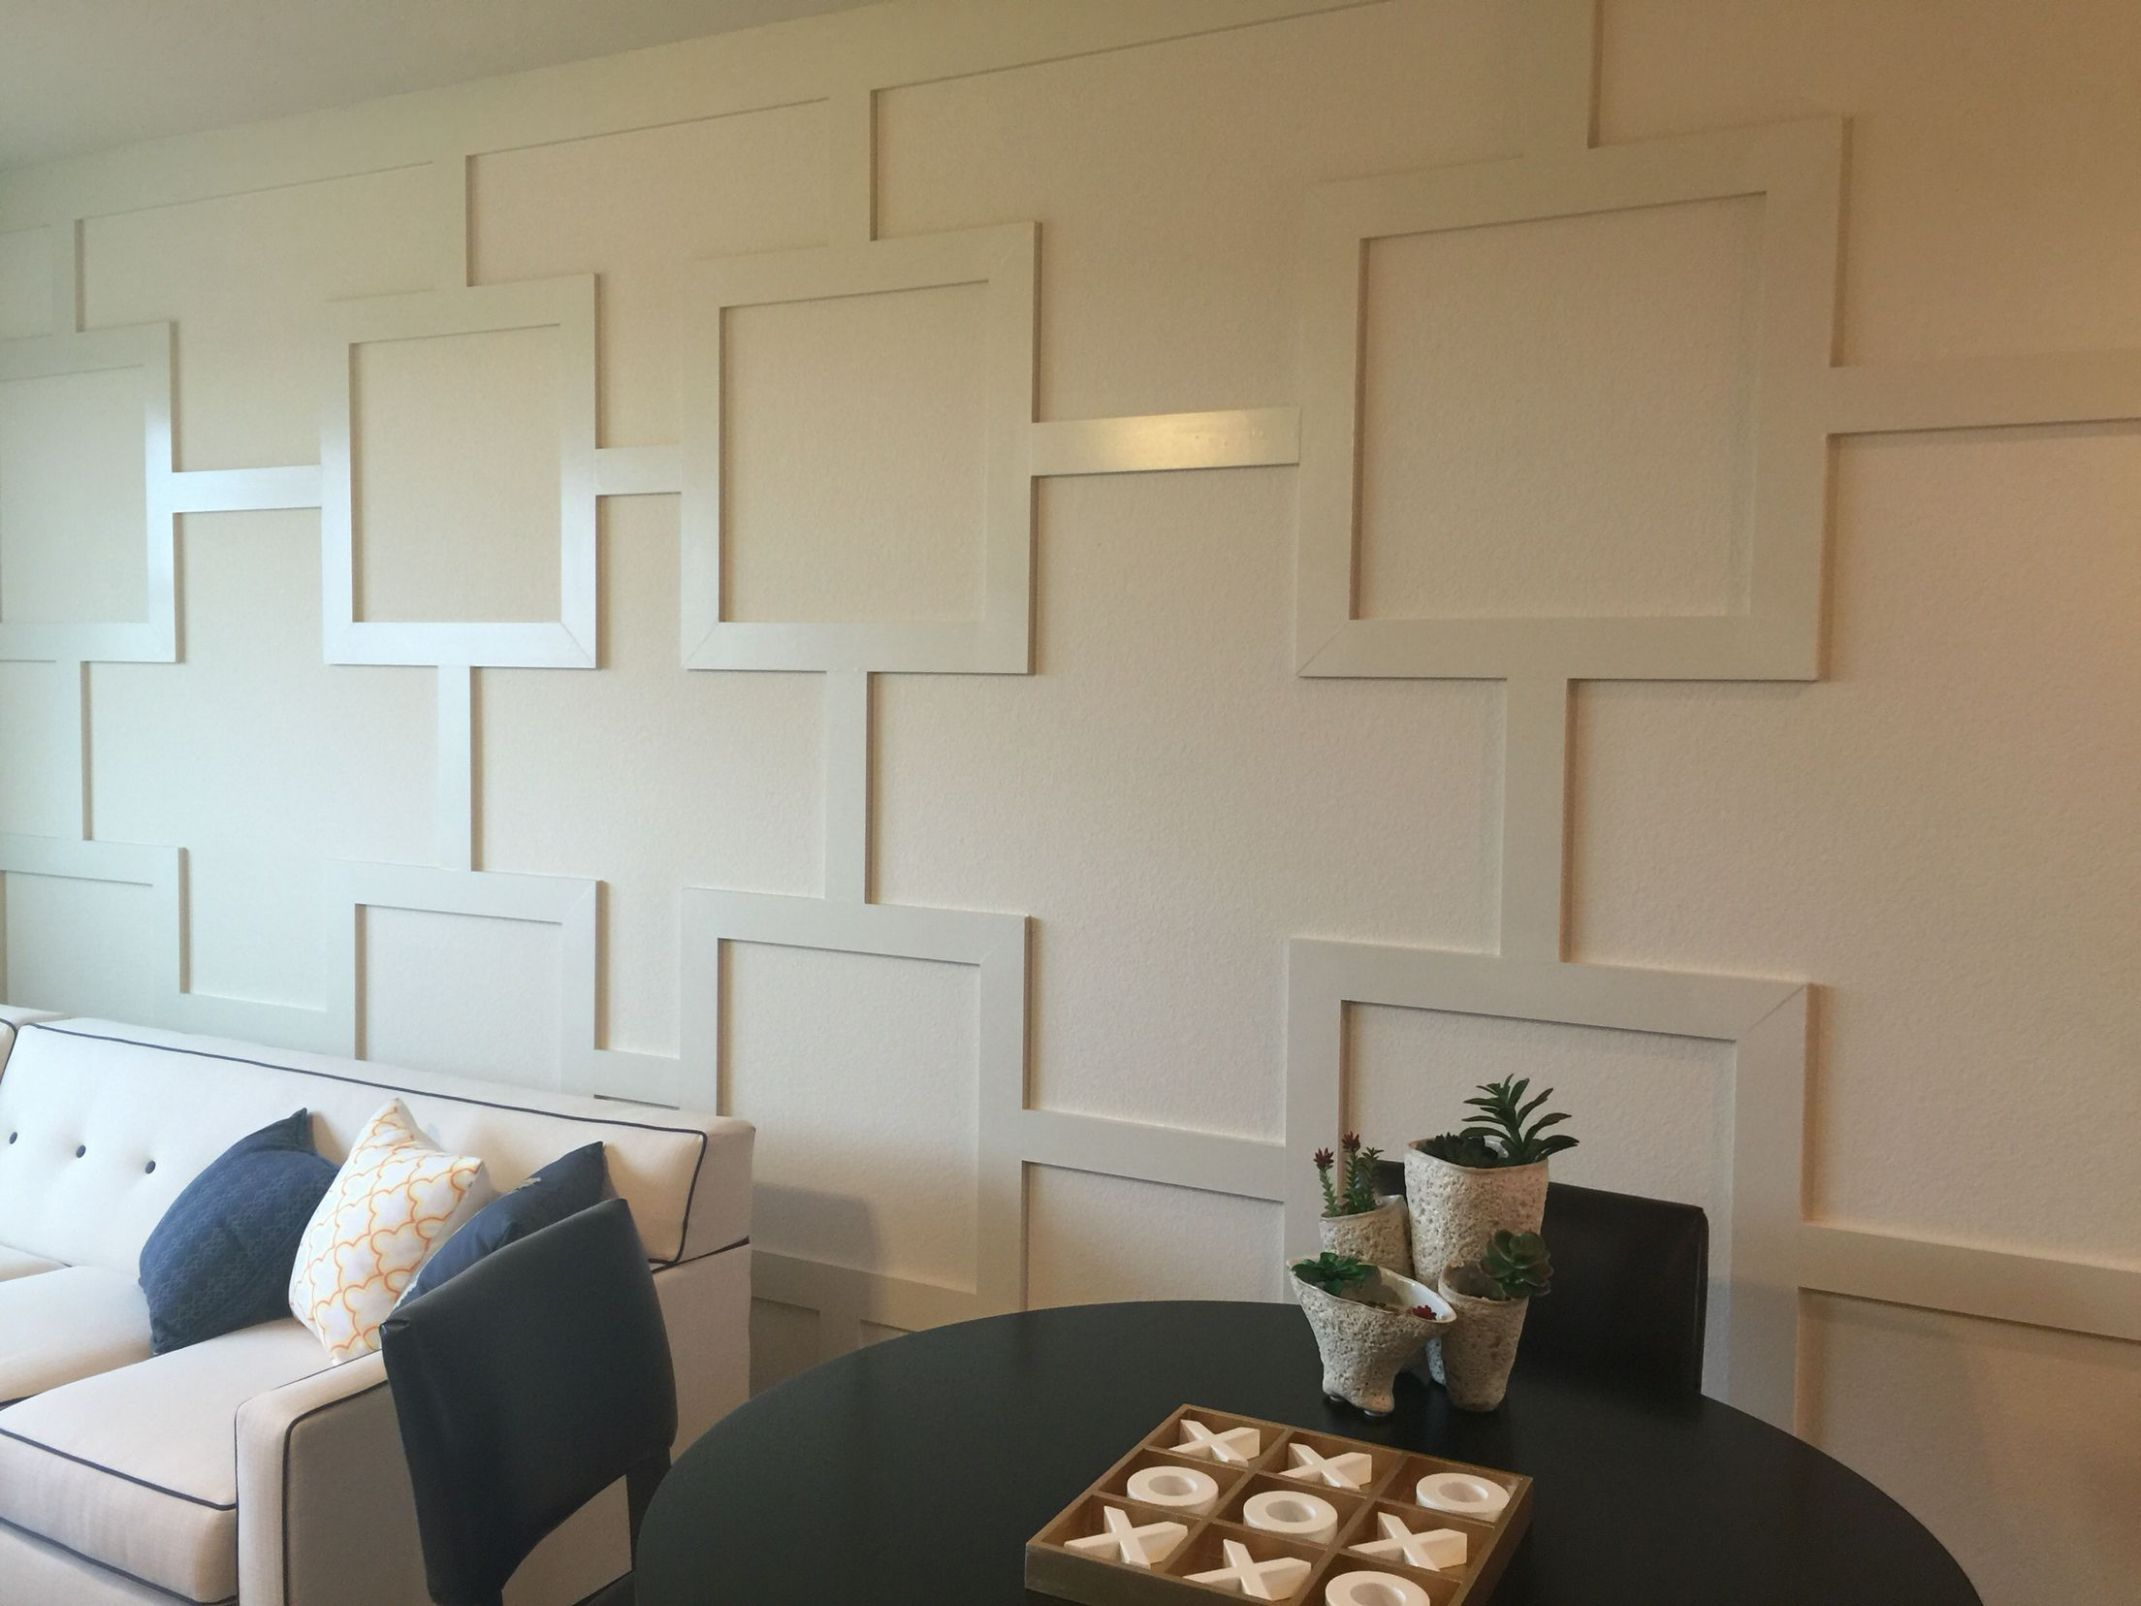 Wood trim design accent wall. Simply use 11x11's to add this look to ...